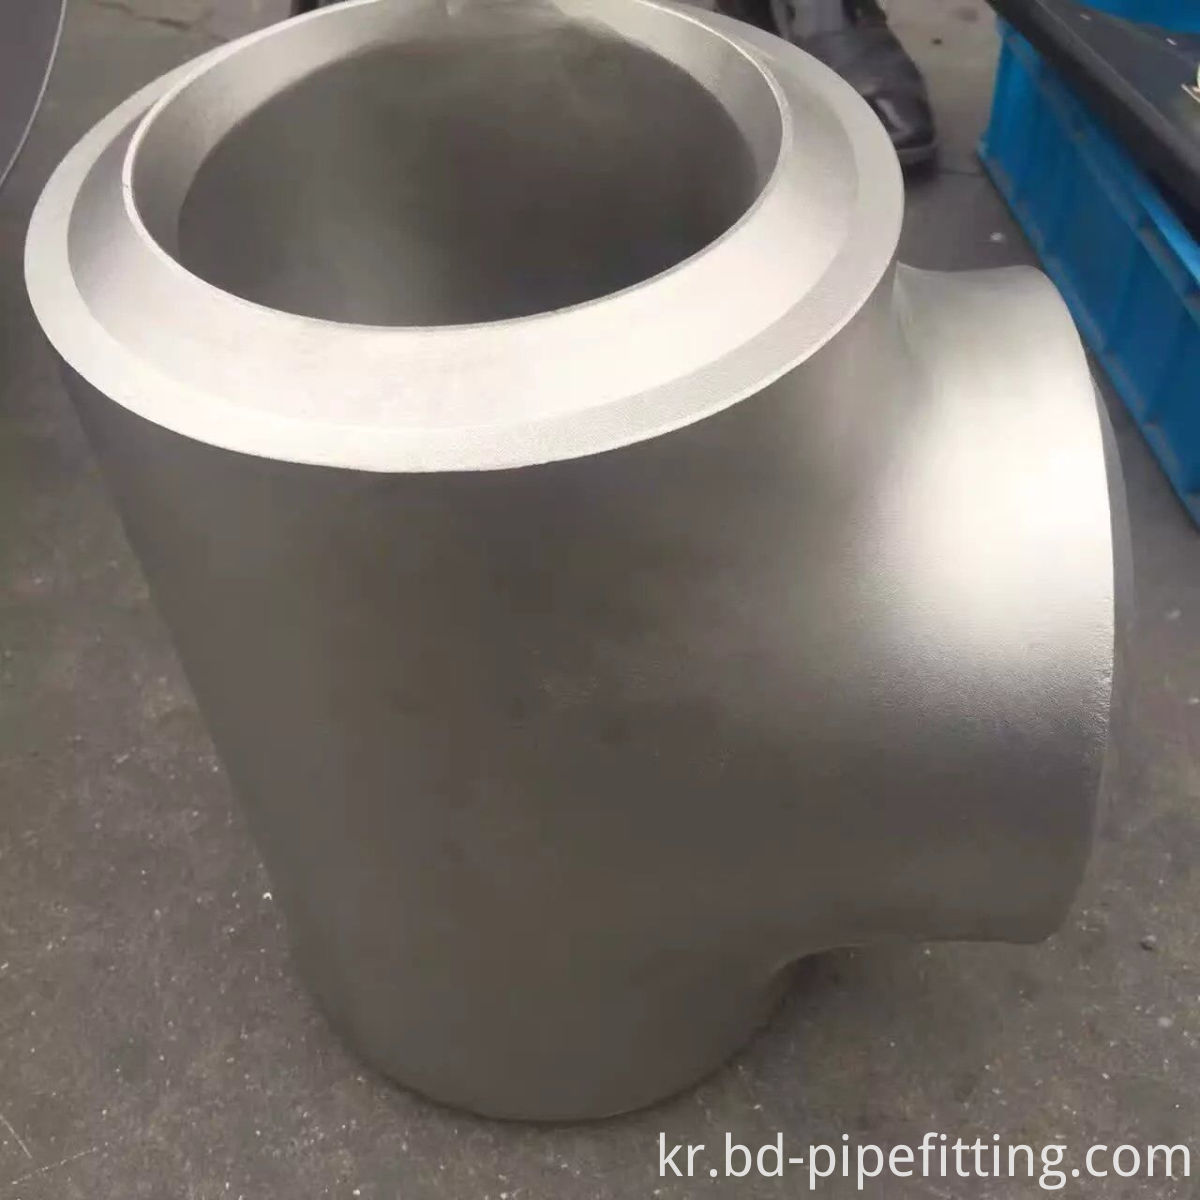 ASTM A860 WPHY 65 Butt Weld 45D Lateral Tee